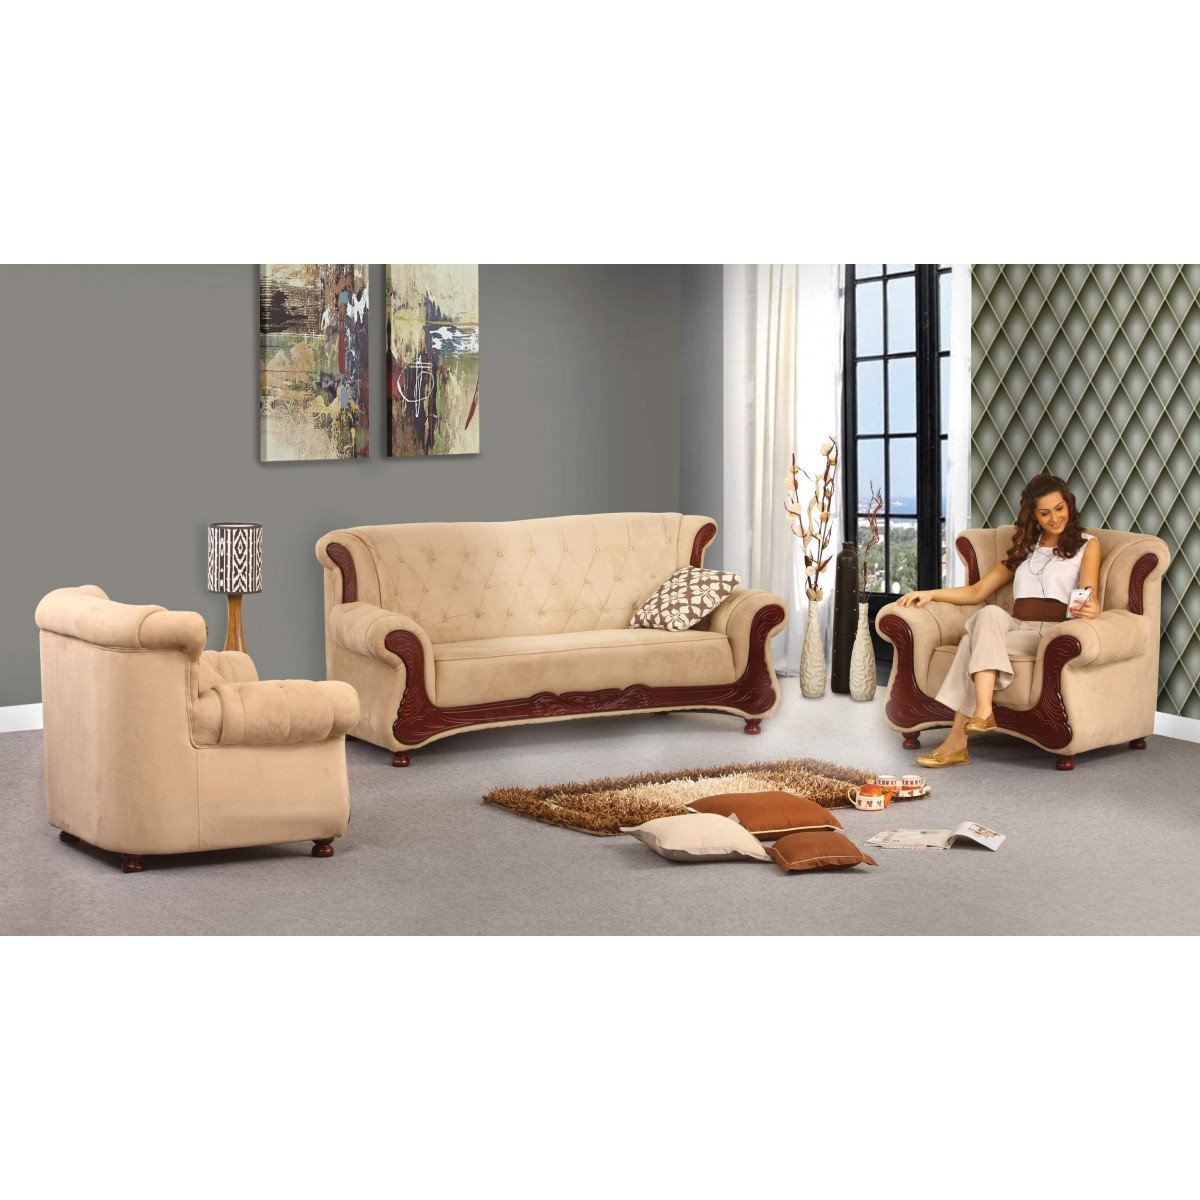 Grace Sofa | Damro Pertaining To Grace Sofa Chairs (Image 14 of 25)